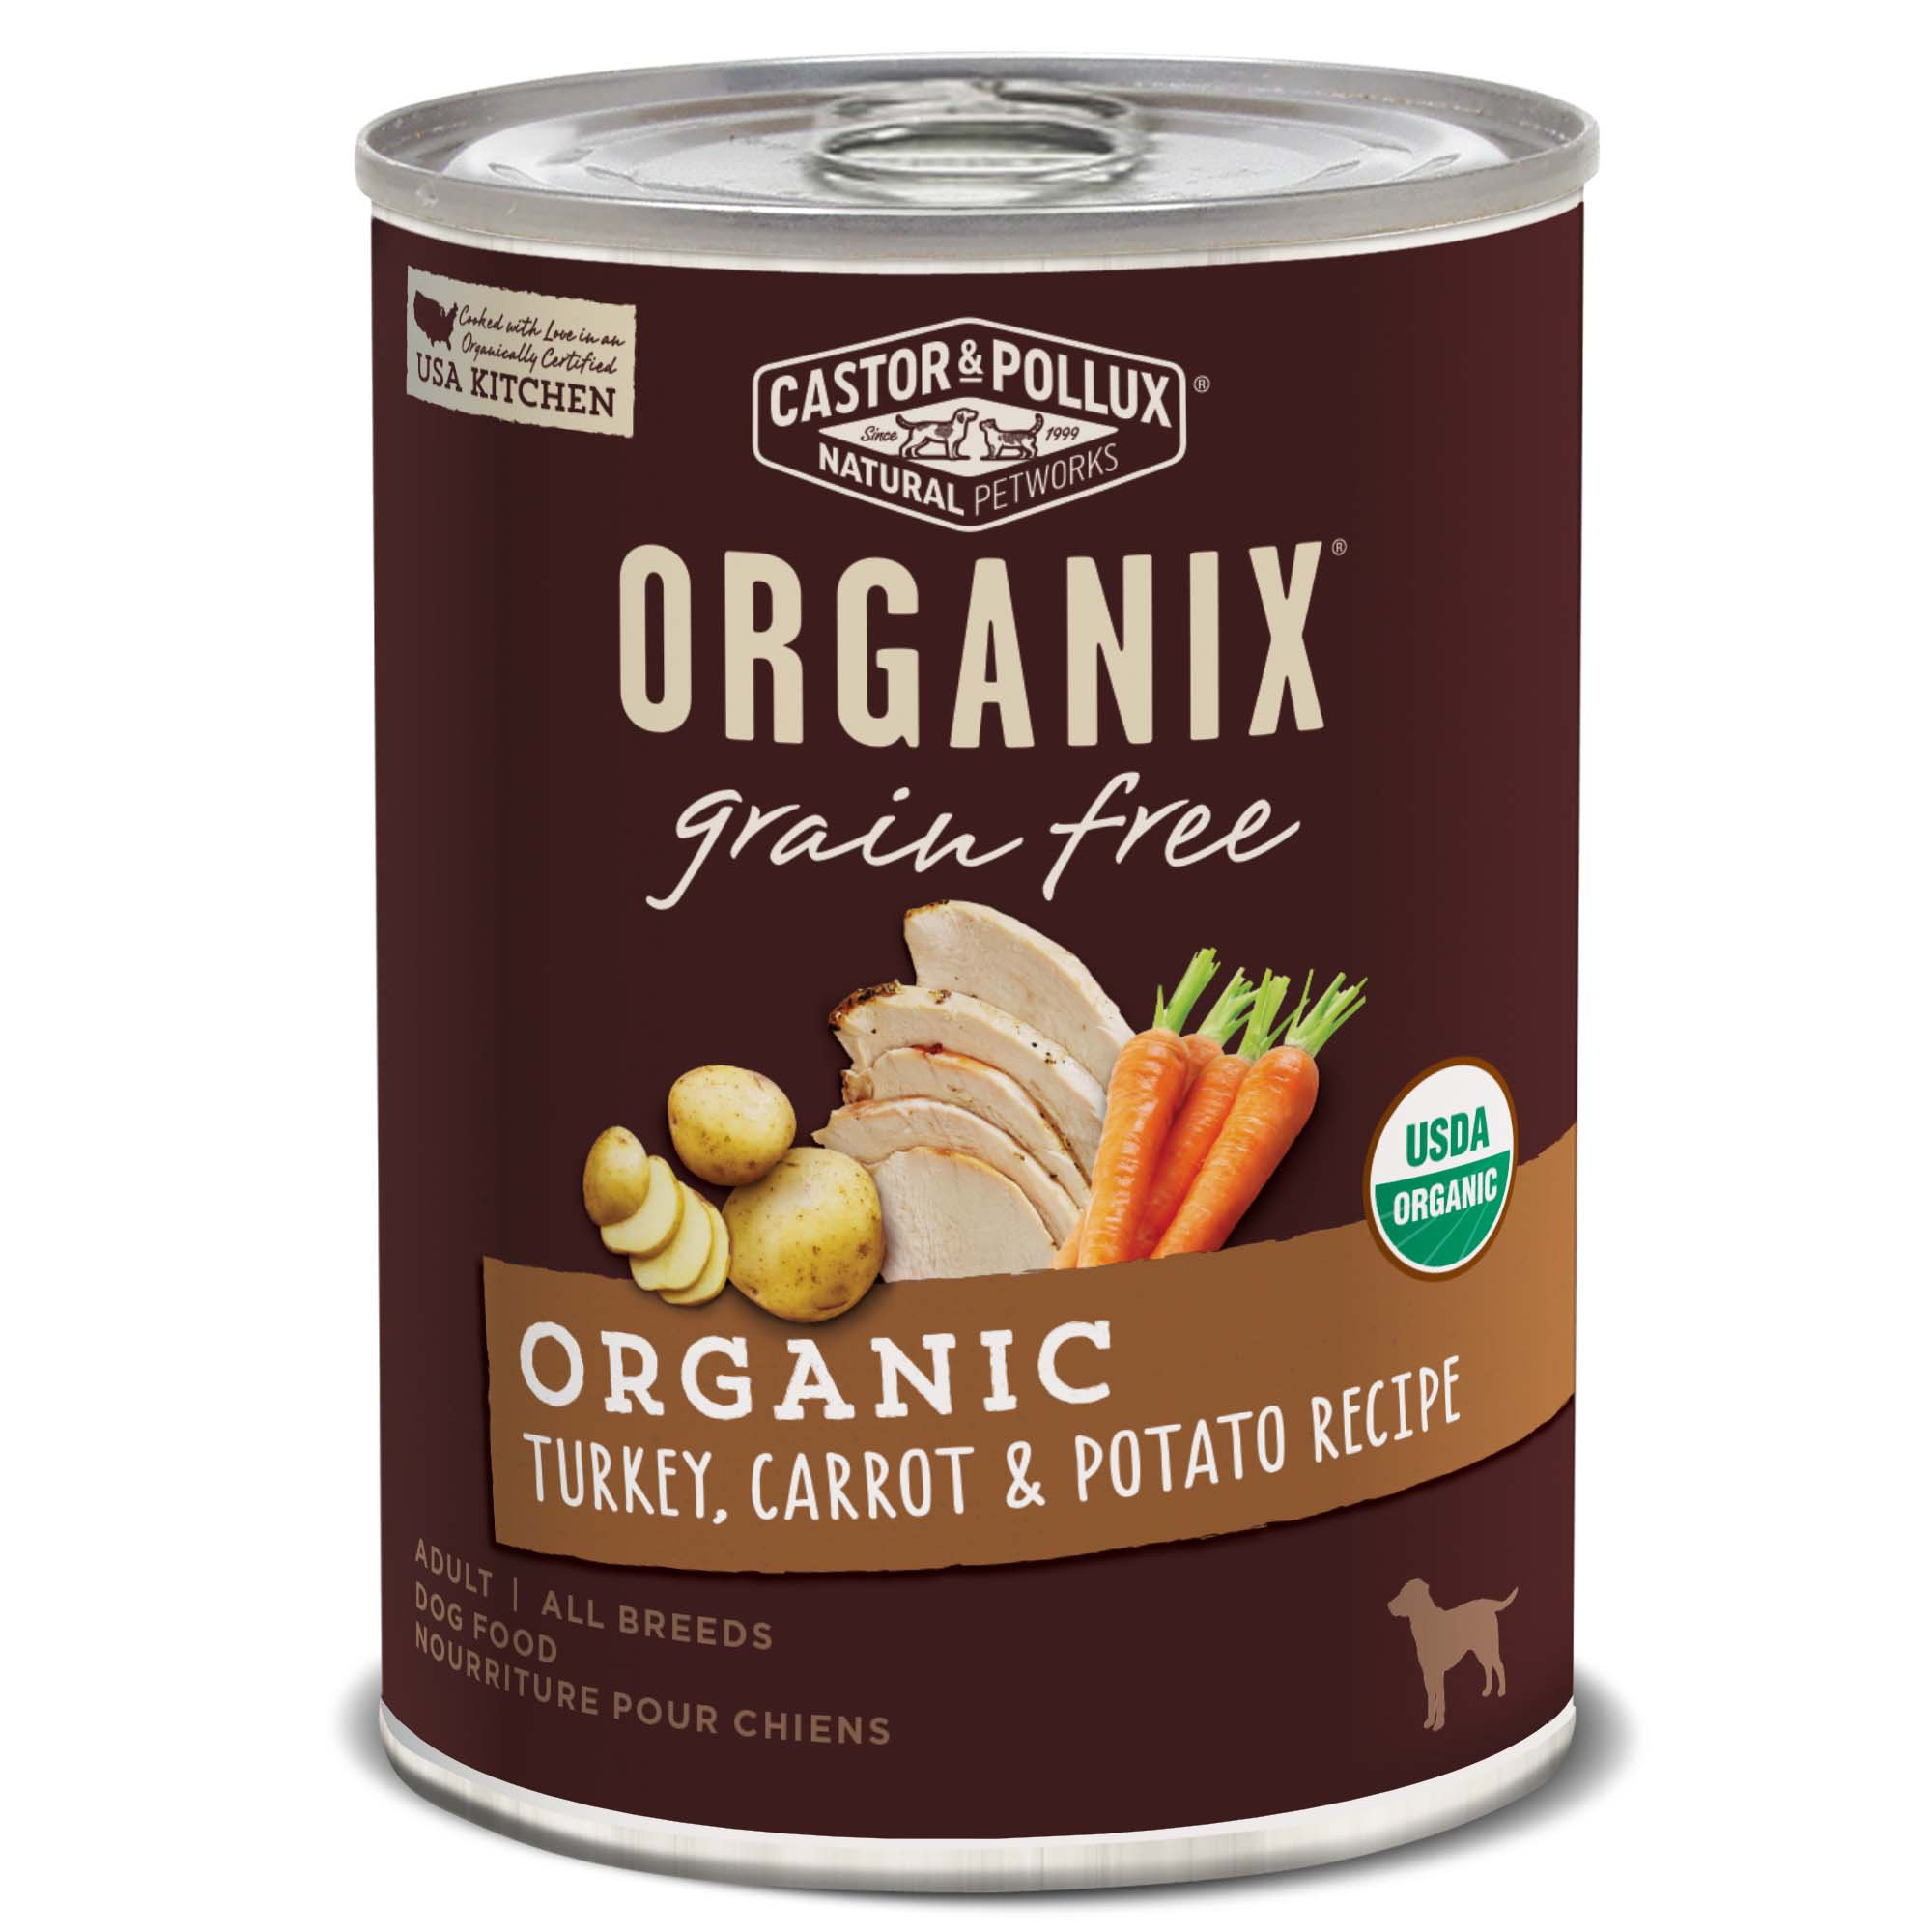 Organic Grain Free Turkey Dog Food